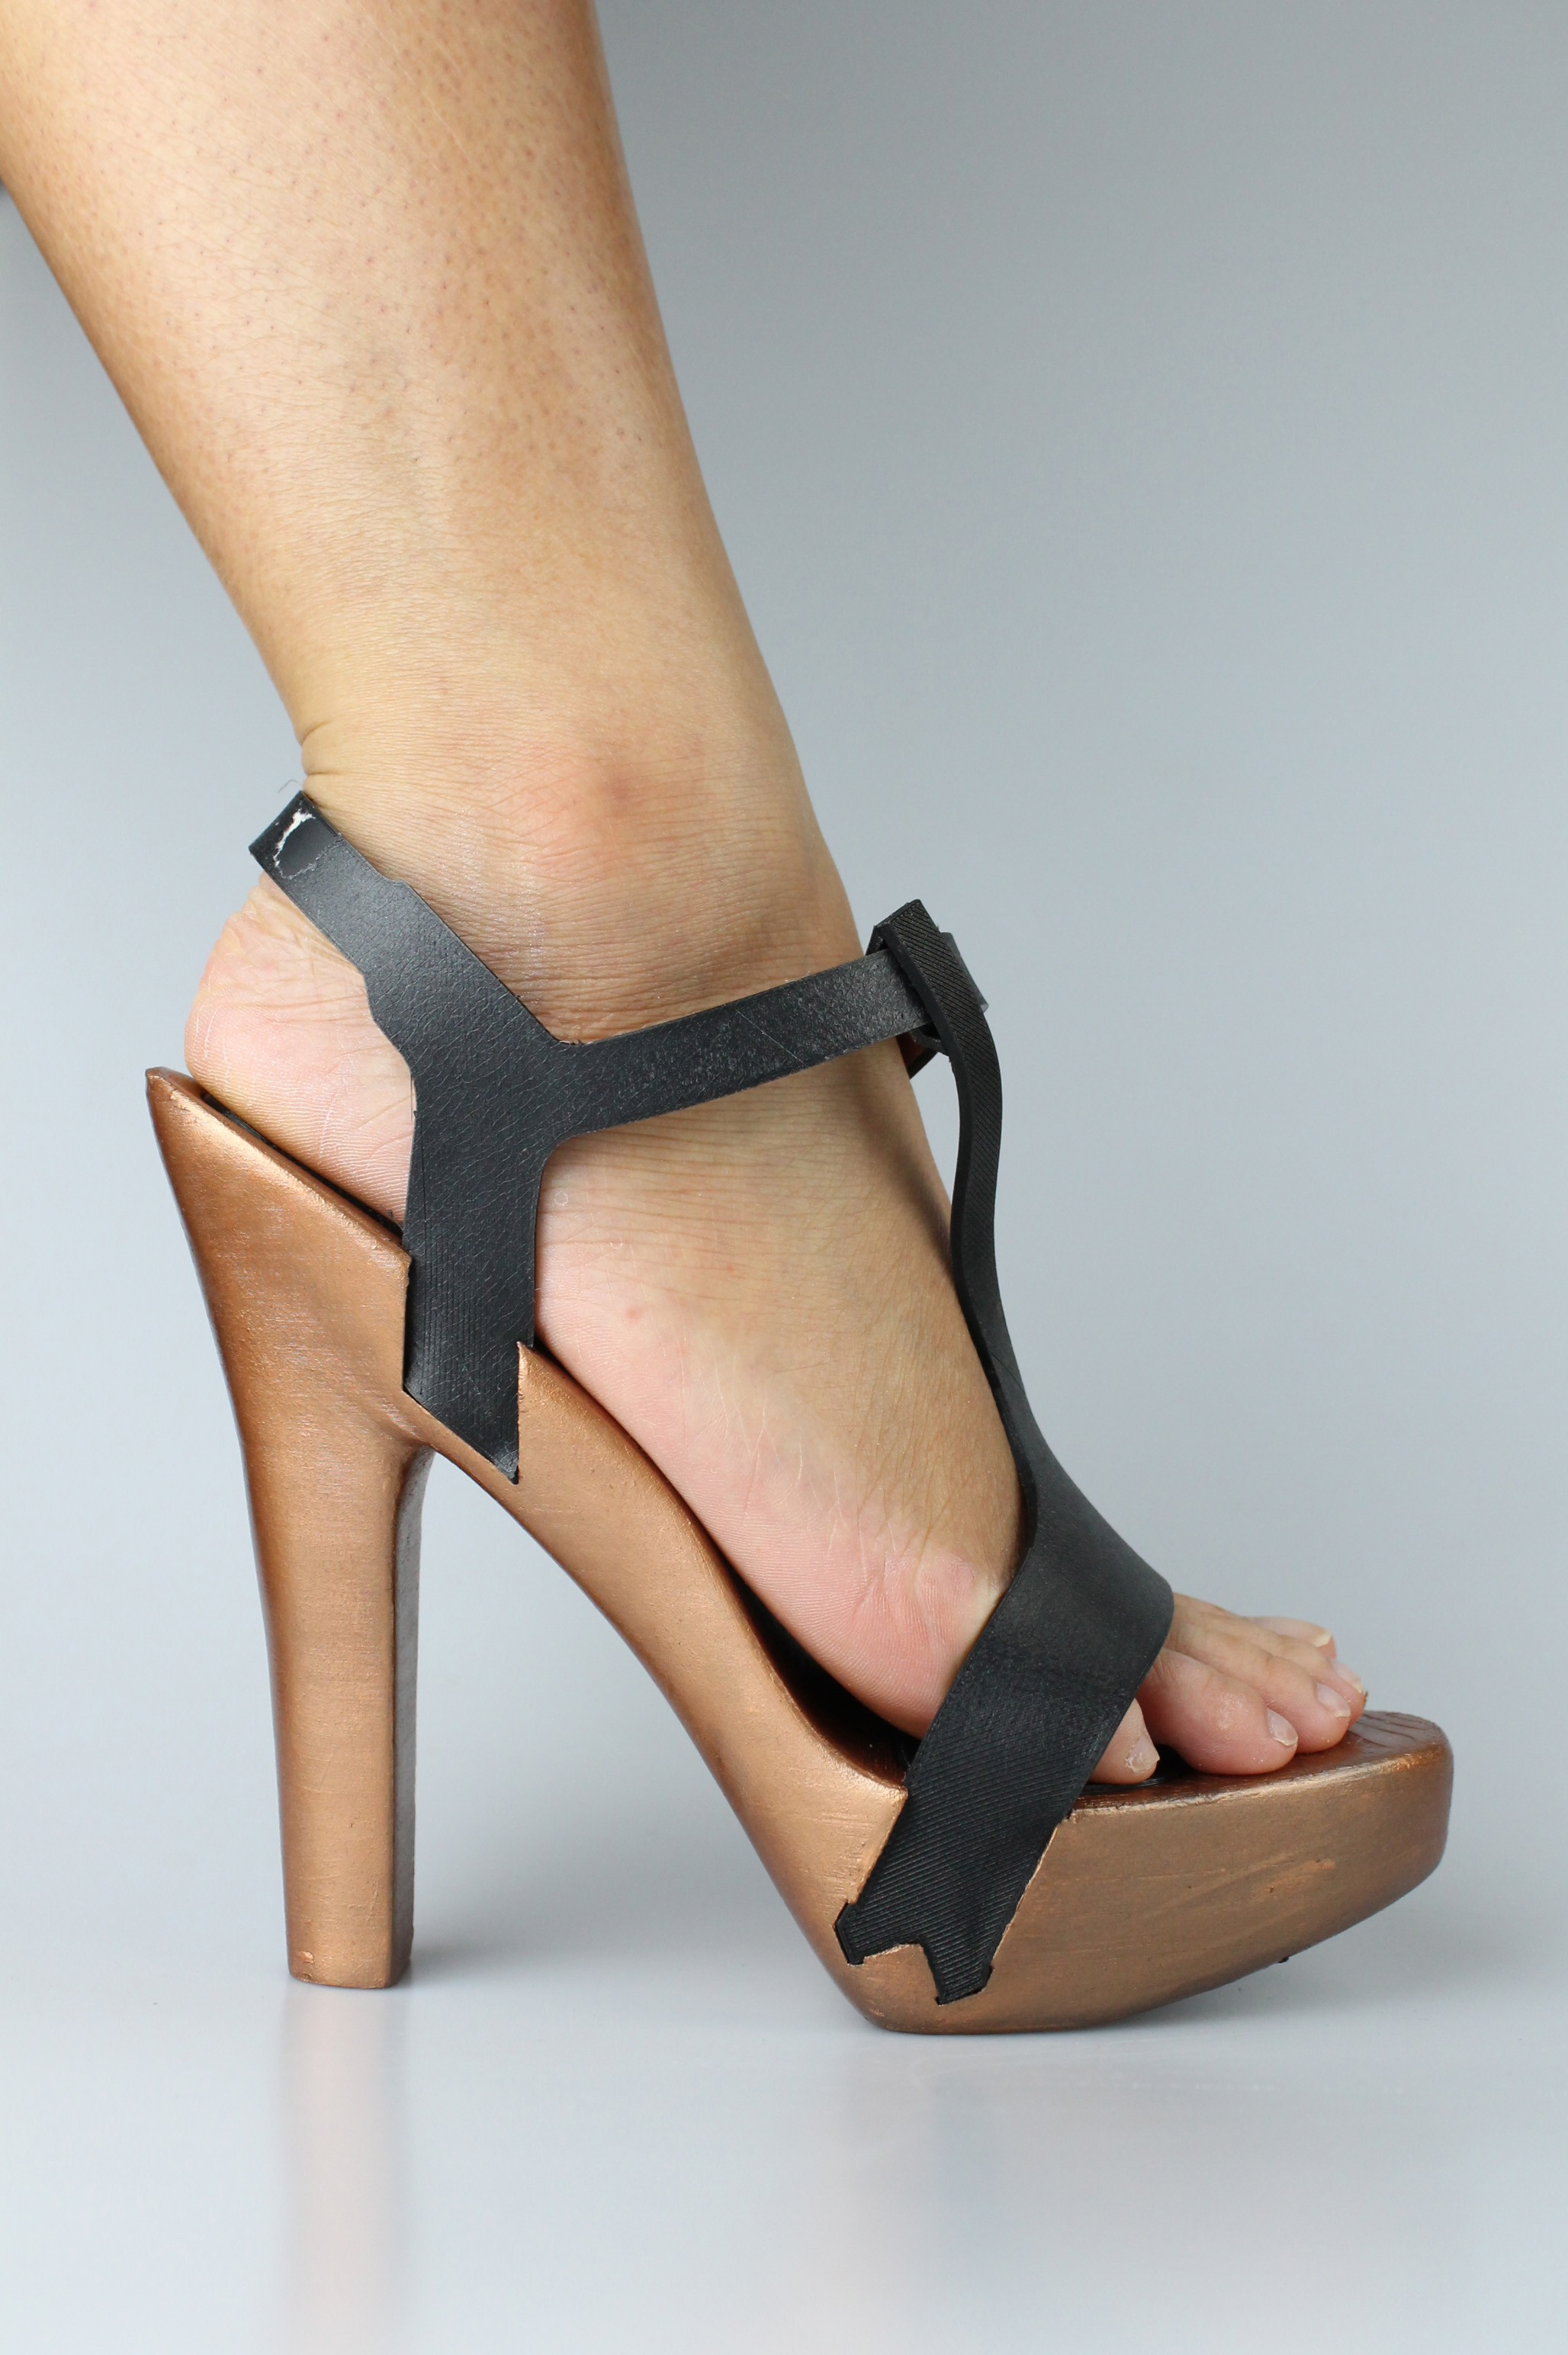 3D Printed High Heels, Because Aphrodite's Shoes Had to ...